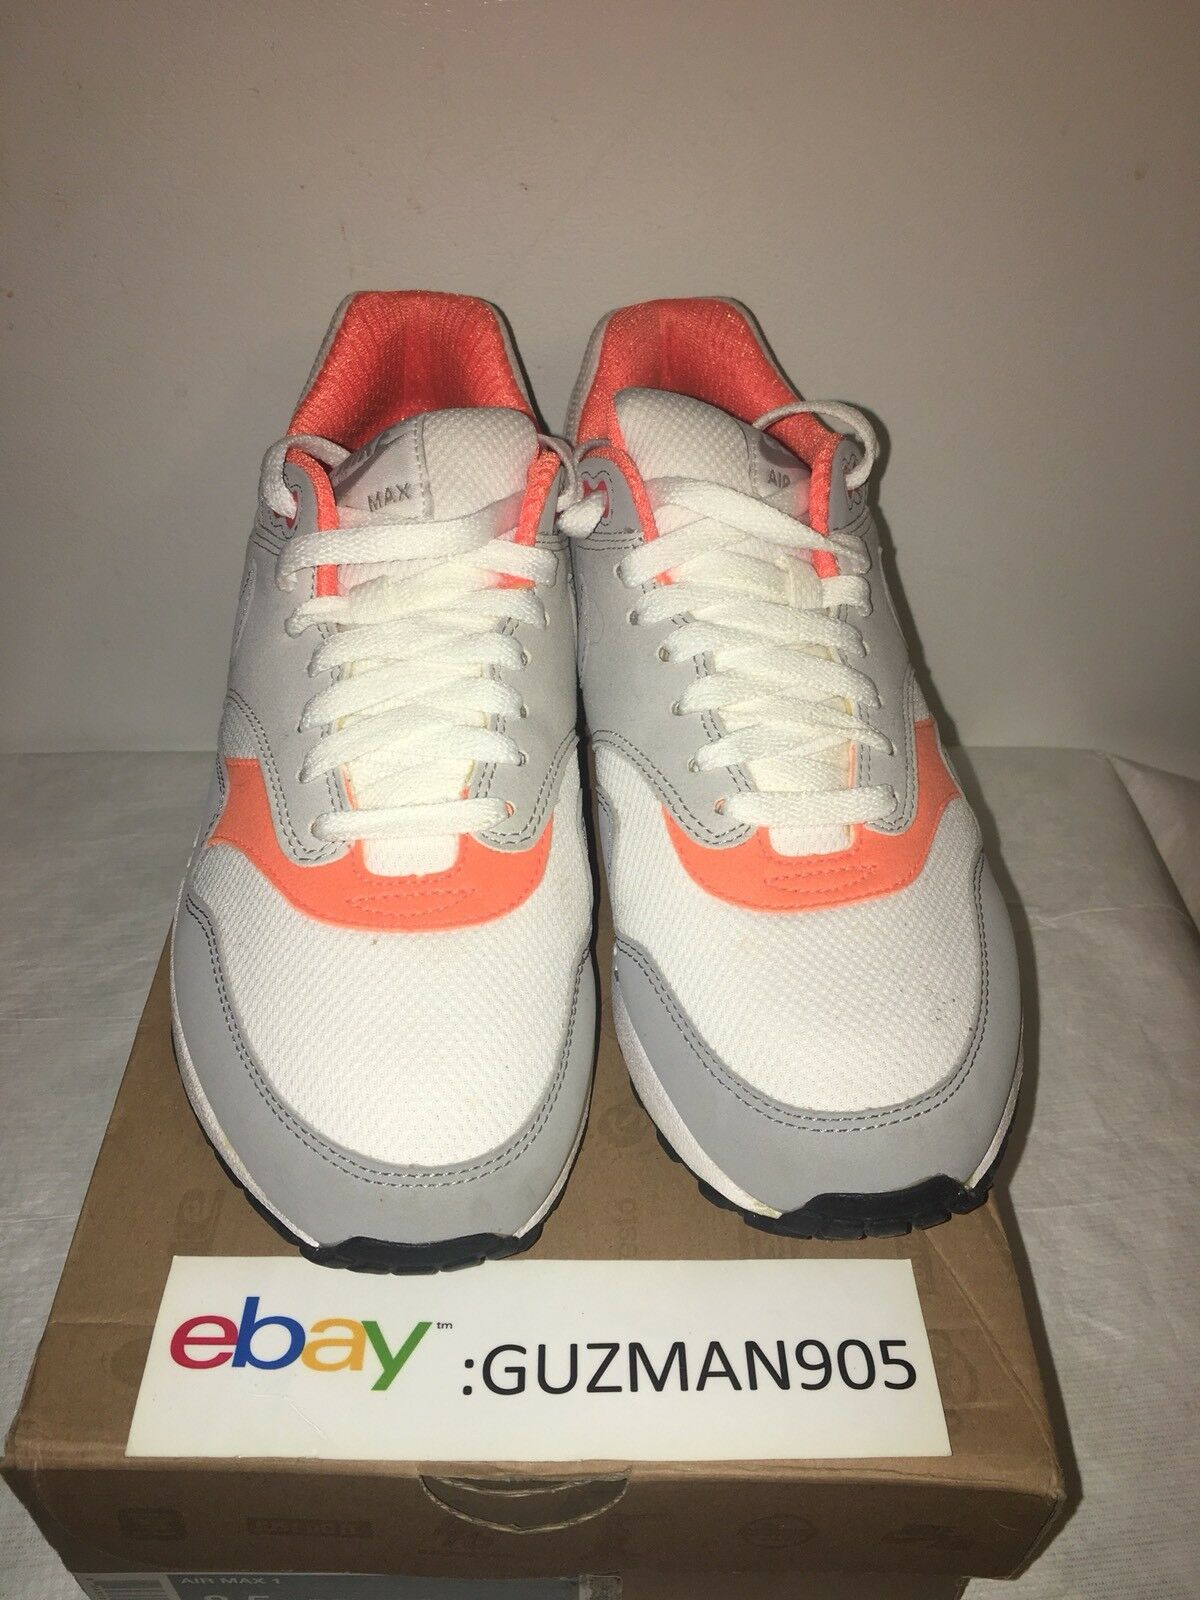 2010 Nike Air Max 1 Total orange Size 8.5 308866 106 Patta Atmos Euro 87